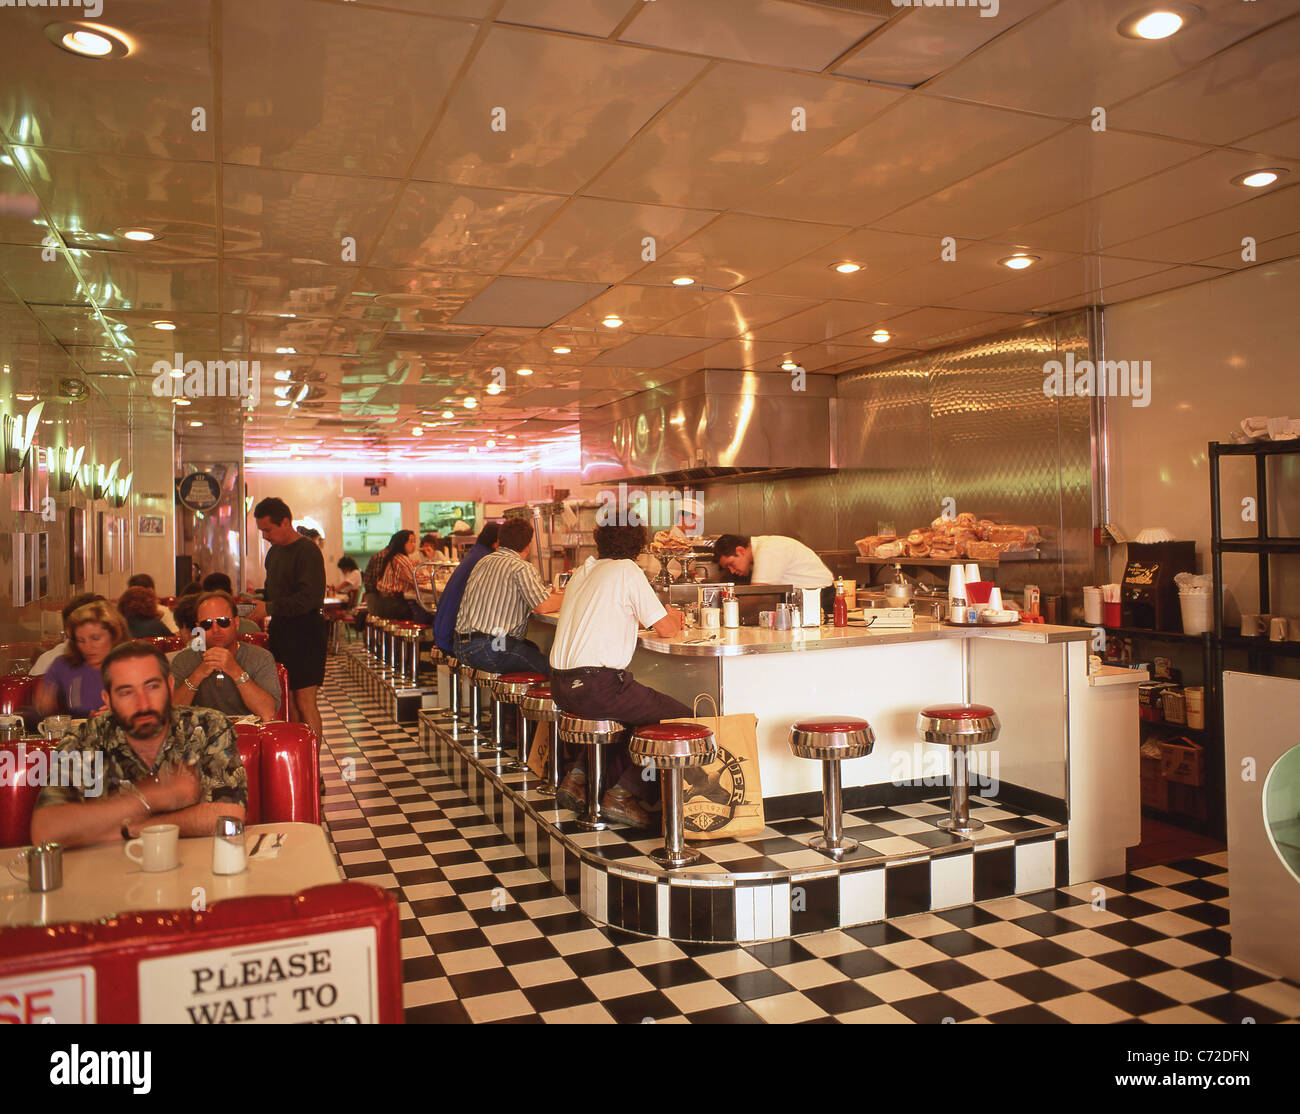 American Diner High Resolution Stock Photography And Images Alamy